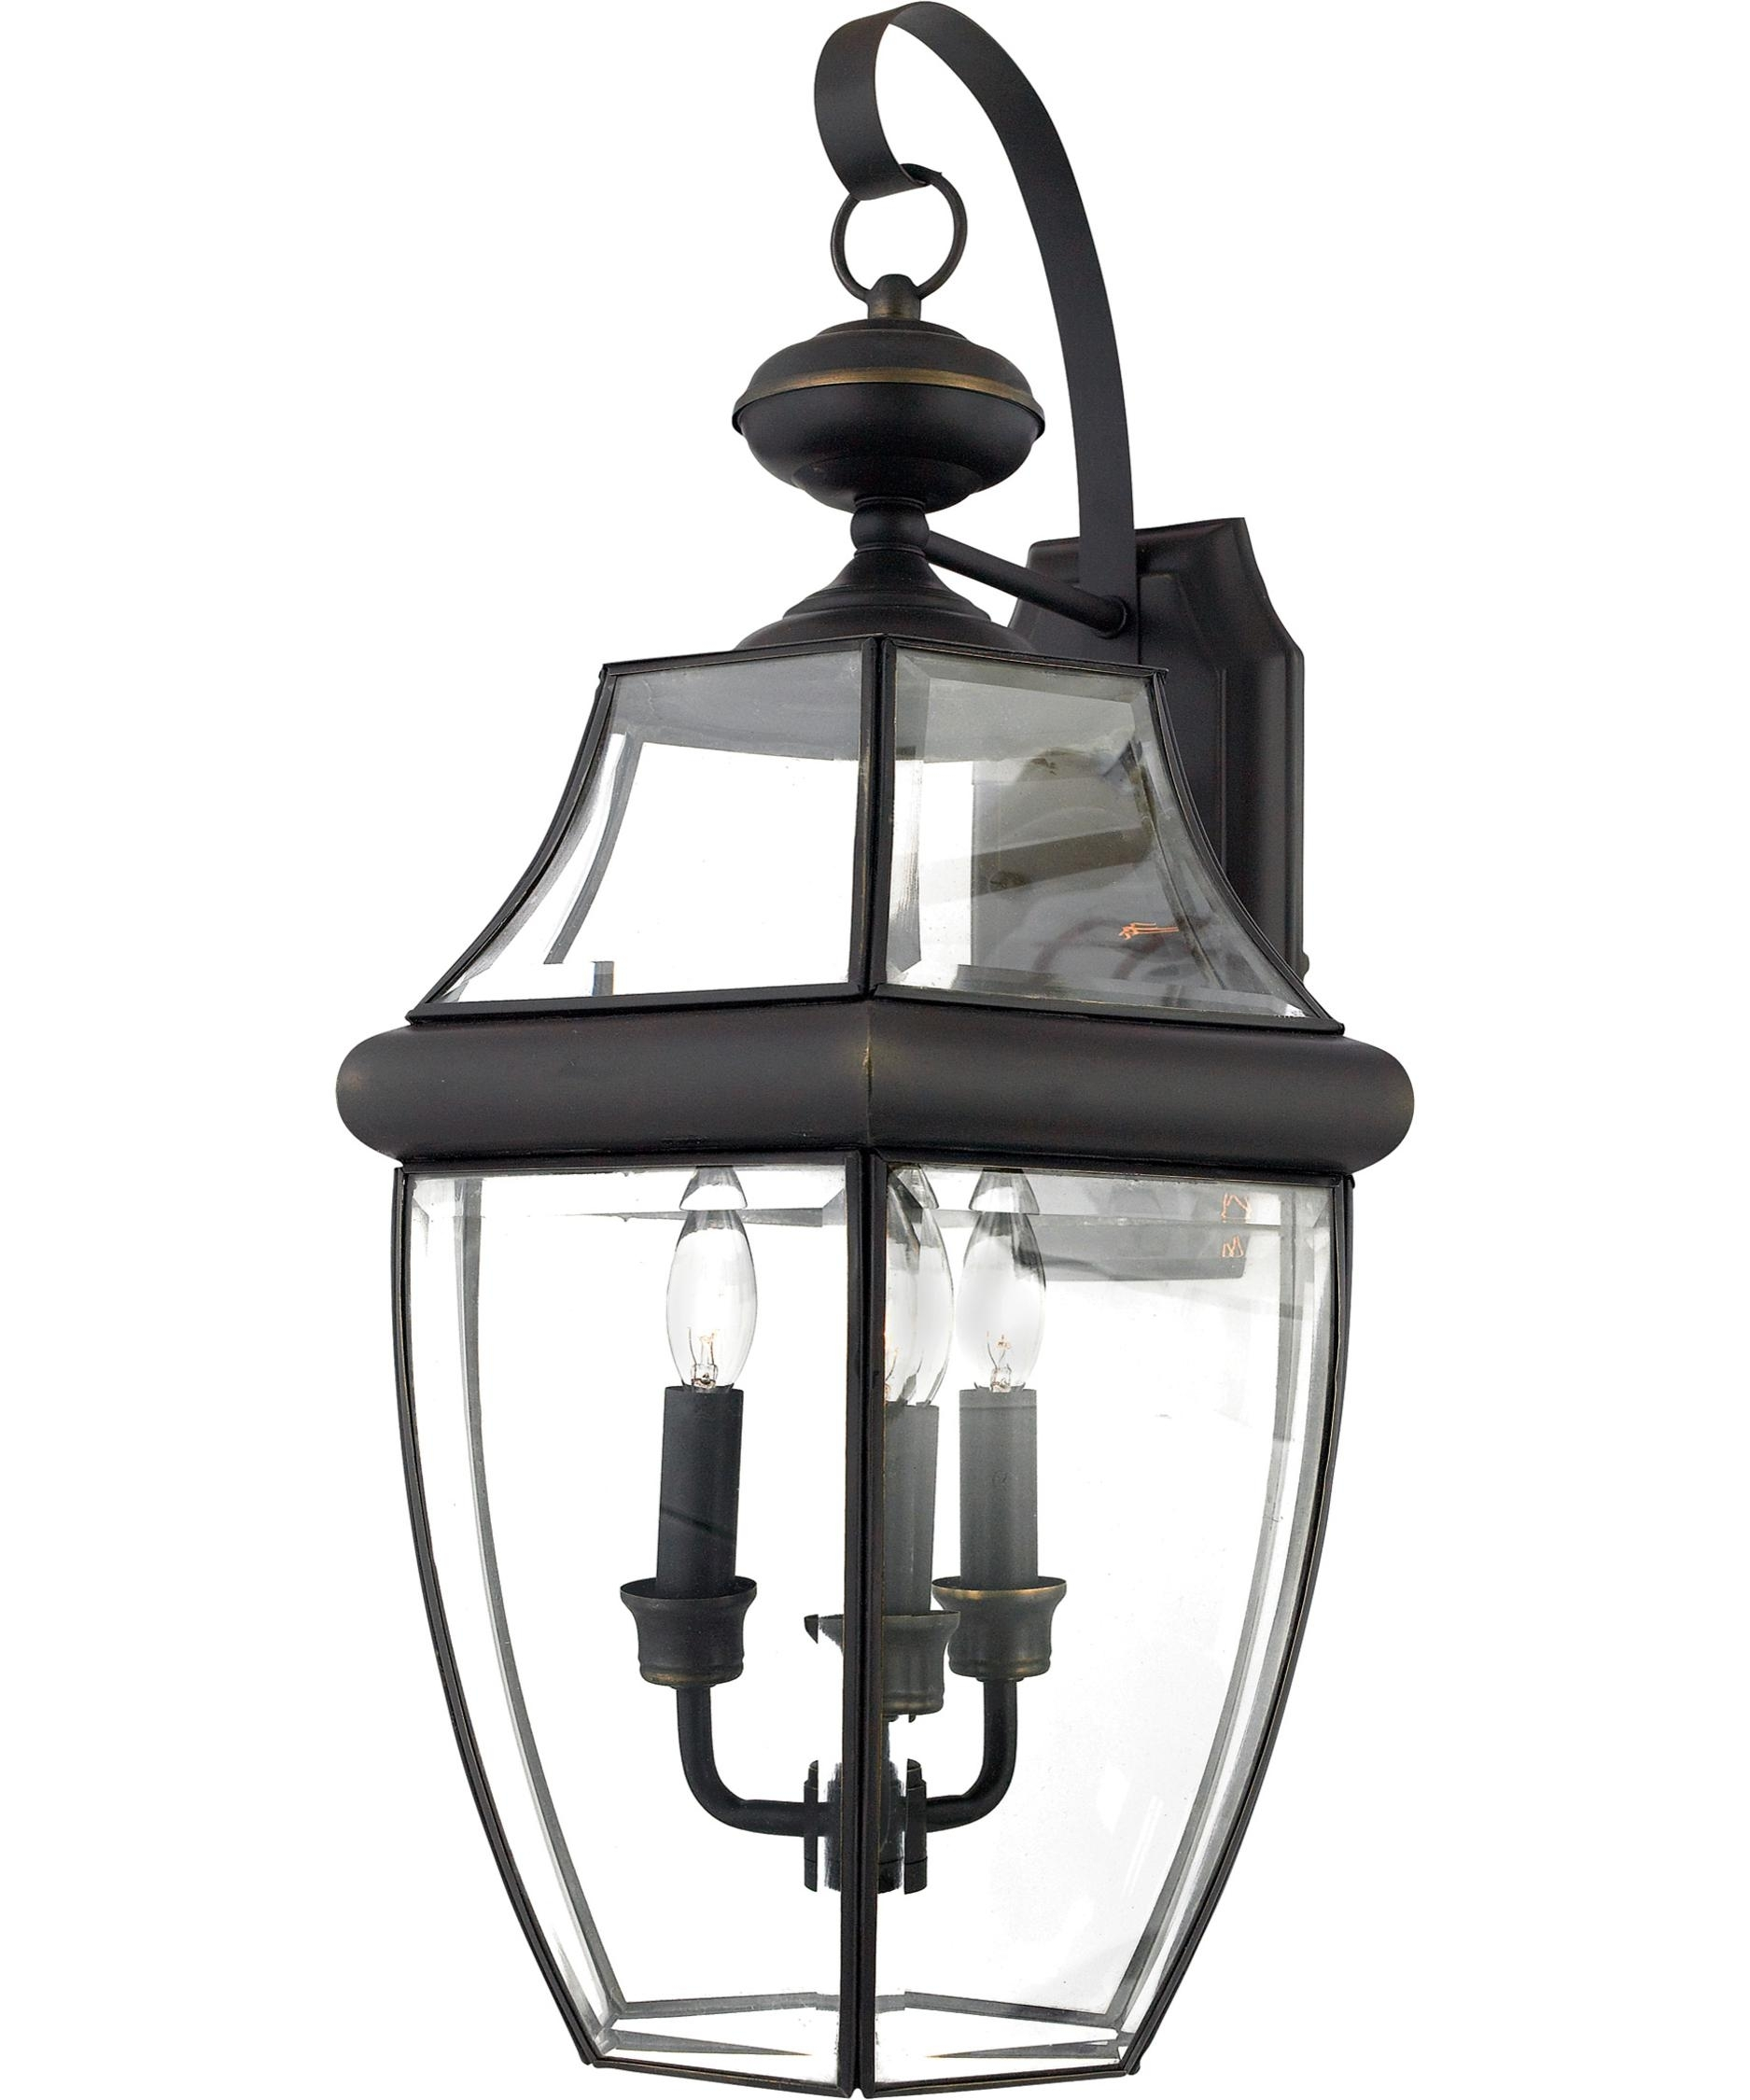 Quoizel Ny8318 Newbury 13 Inch Wide 3 Light Outdoor Wall Light pertaining to Quoizel Outdoor Lanterns (Image 8 of 20)